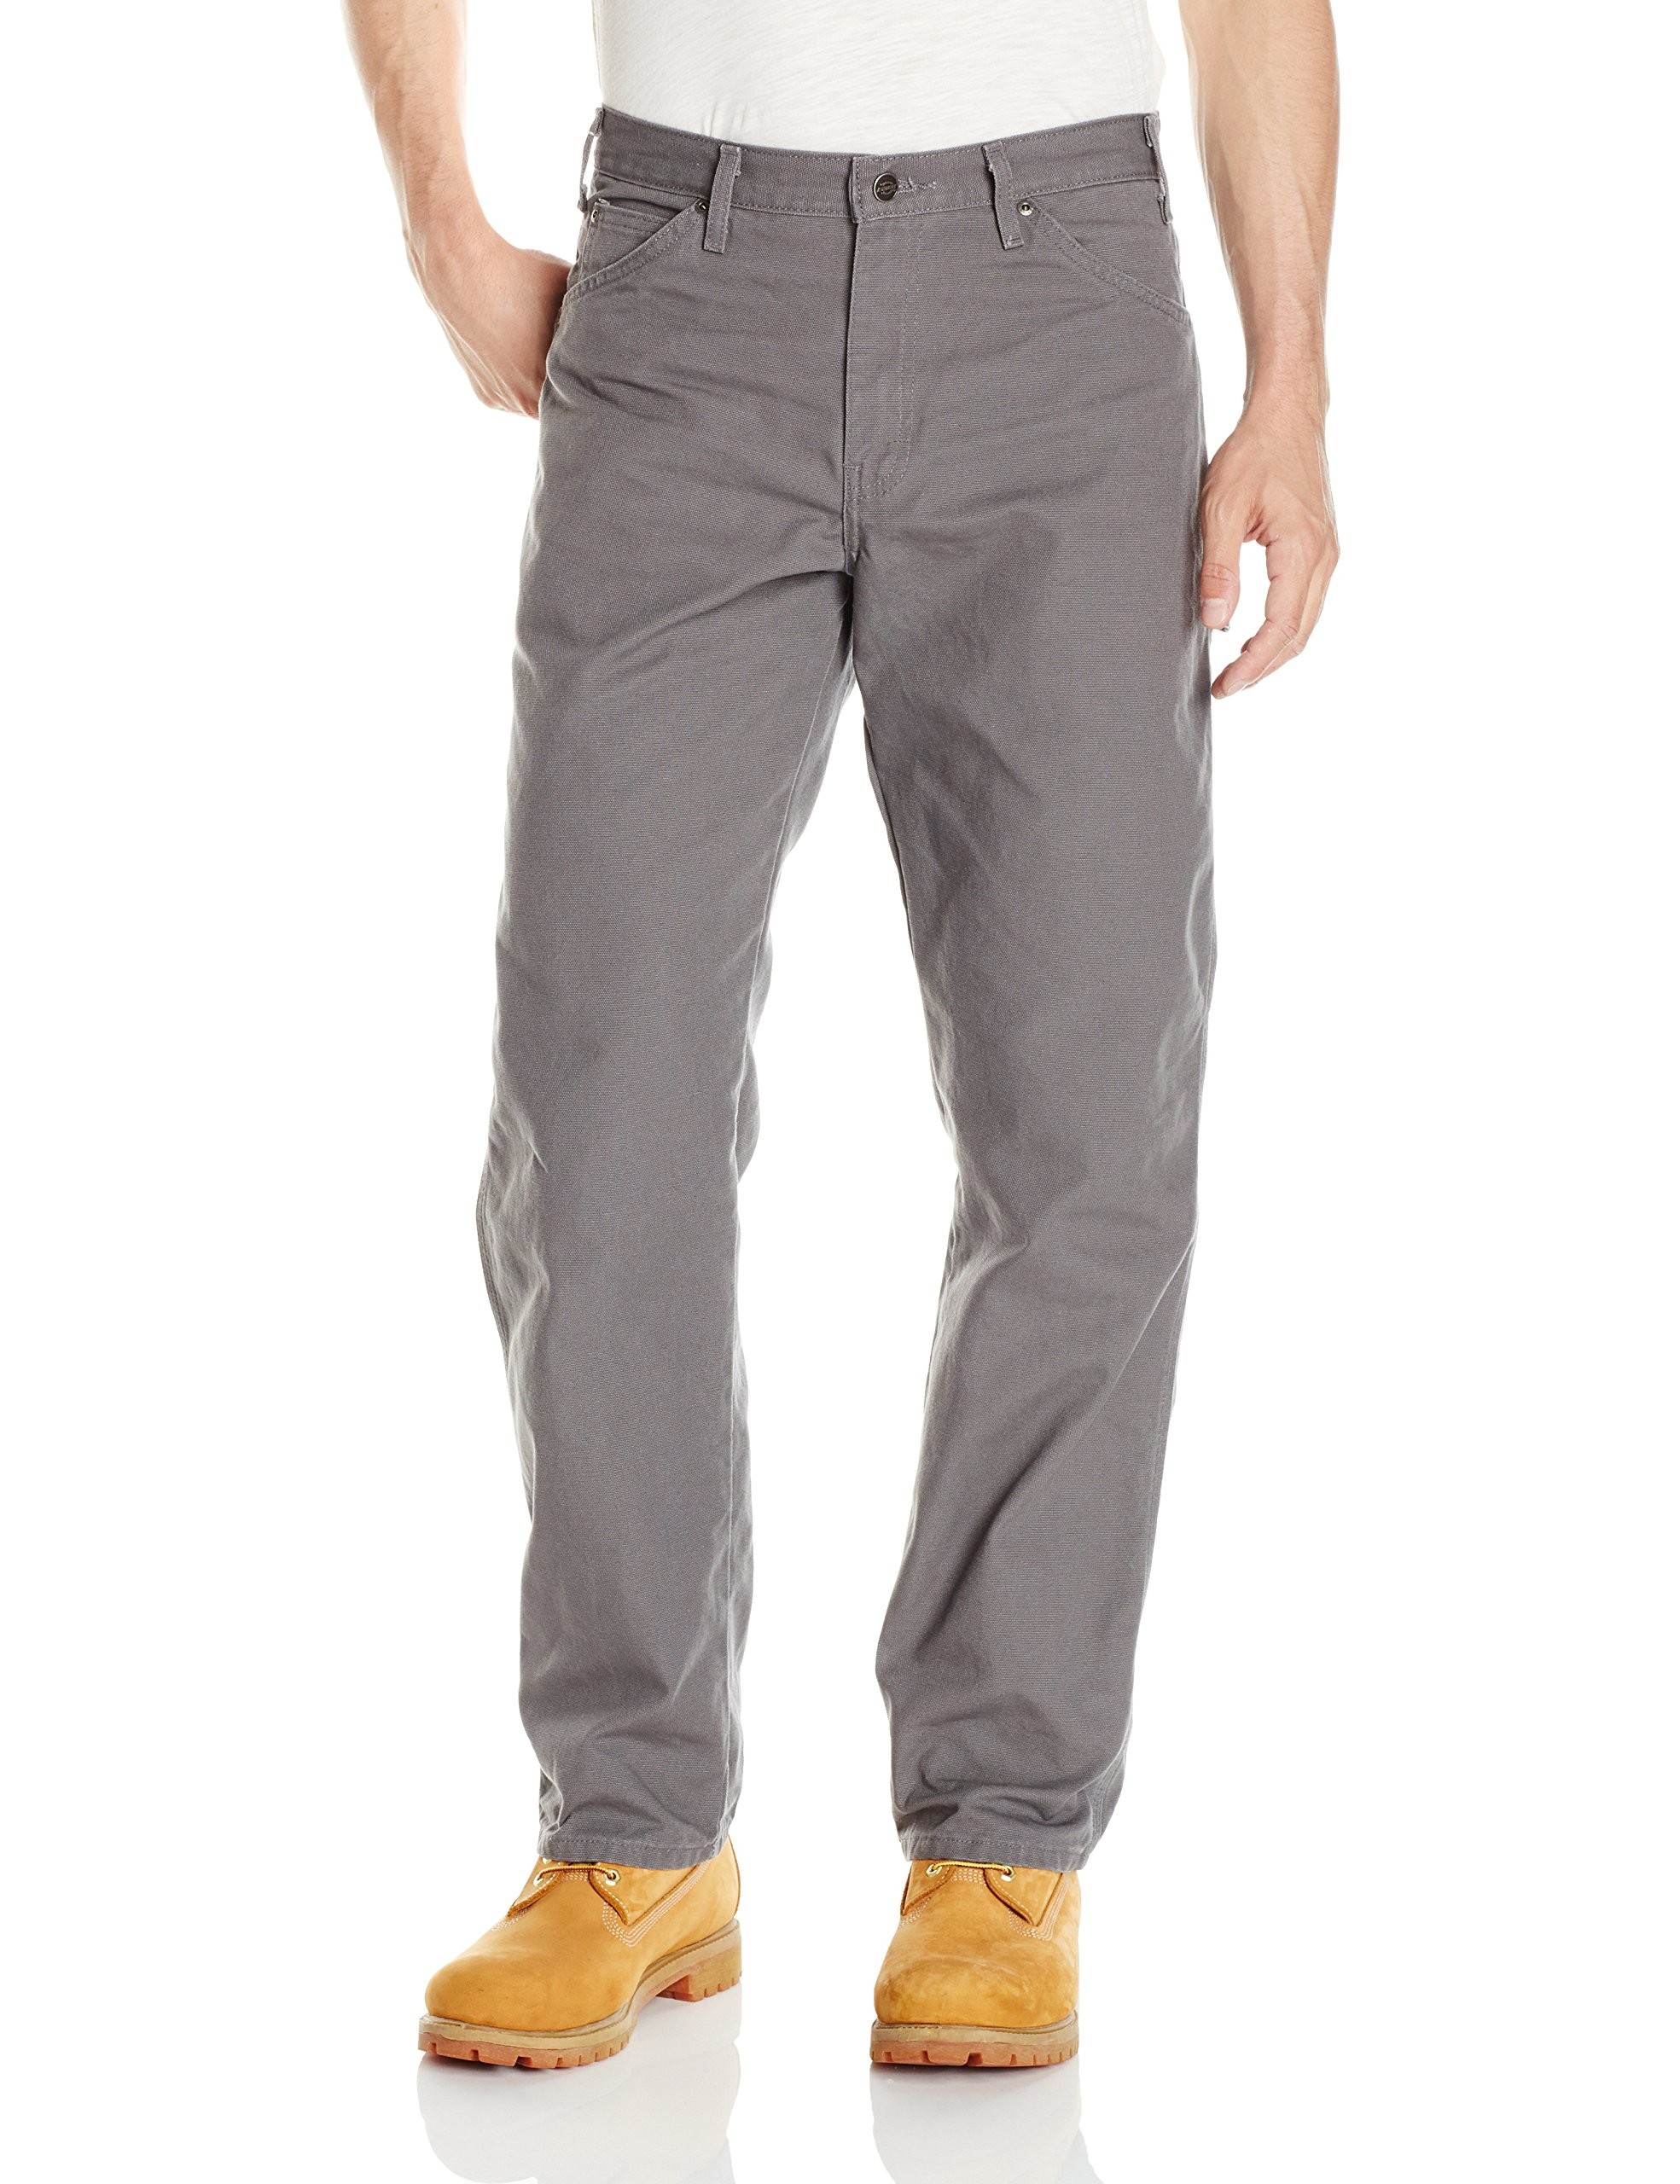 CAT Jeans & Pants for Men Working in rugged conditions requires the most functional and durable pants you can find. CAT jeans and pants are designed with the worker in mind, with pockets galore, abrasion resistance, and flexible paydayloansboise.gqd: Jan 01,